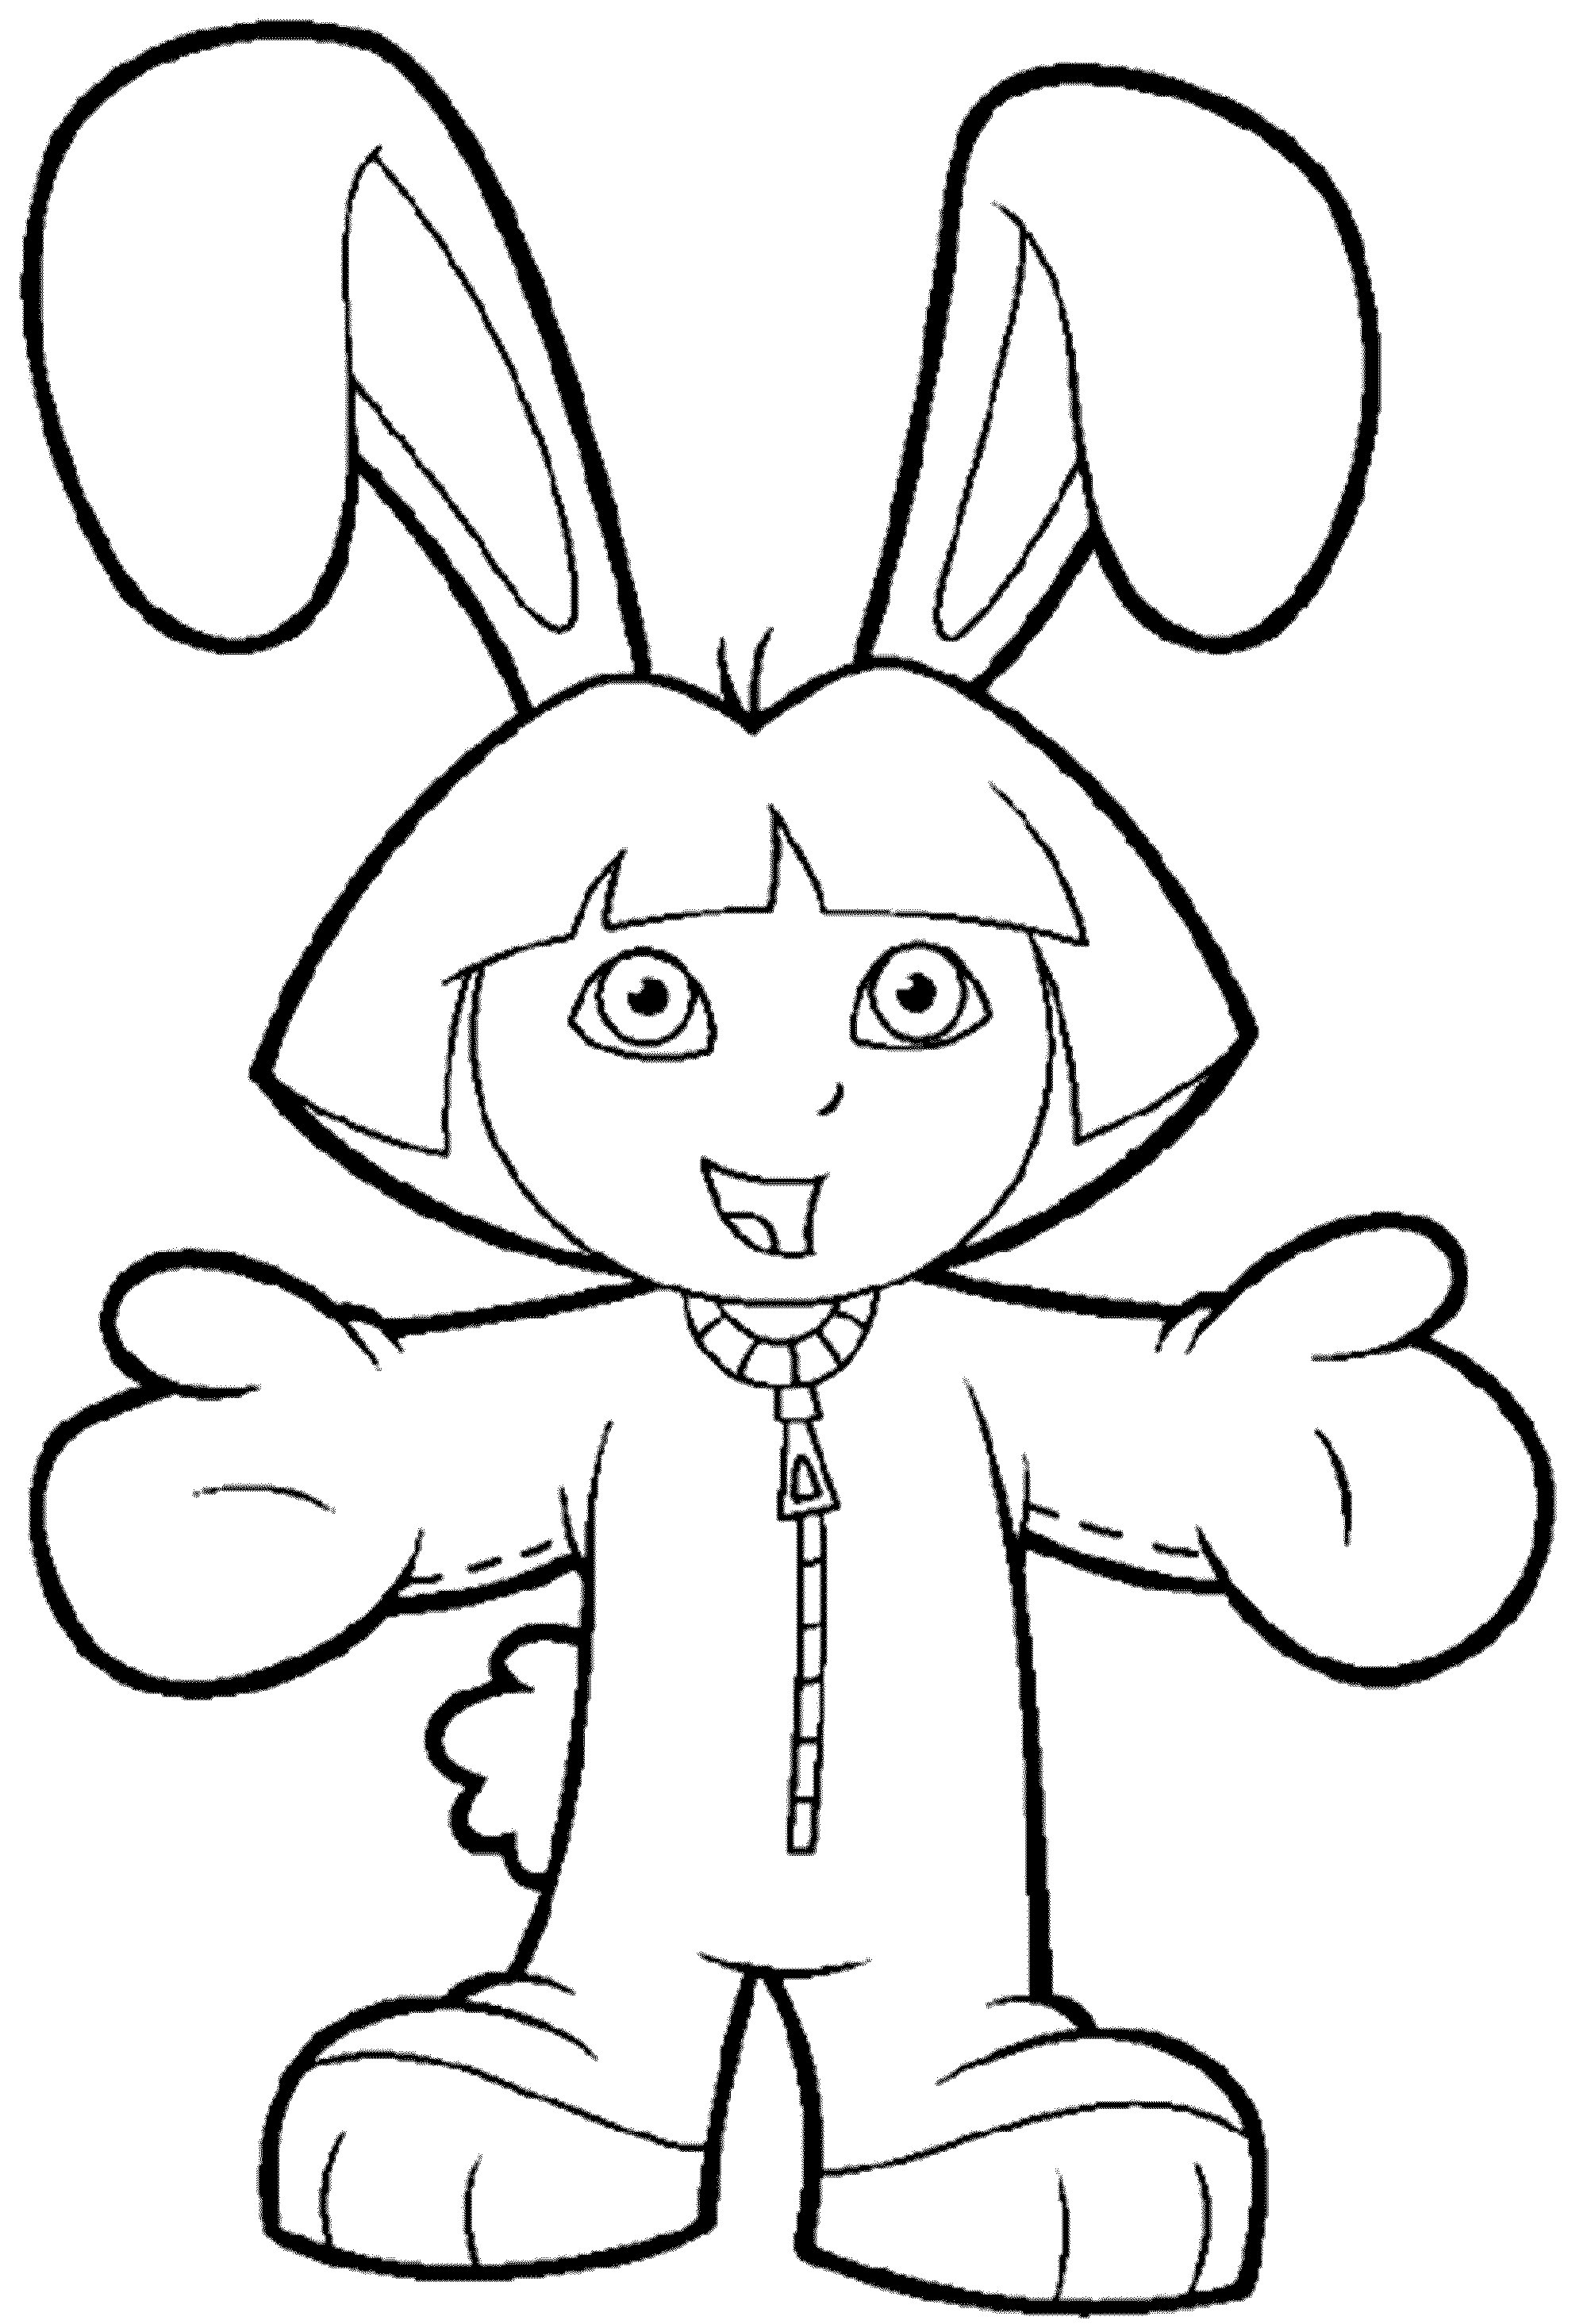 dora colouring print download dora coloring pages to learn new things dora colouring 1 1